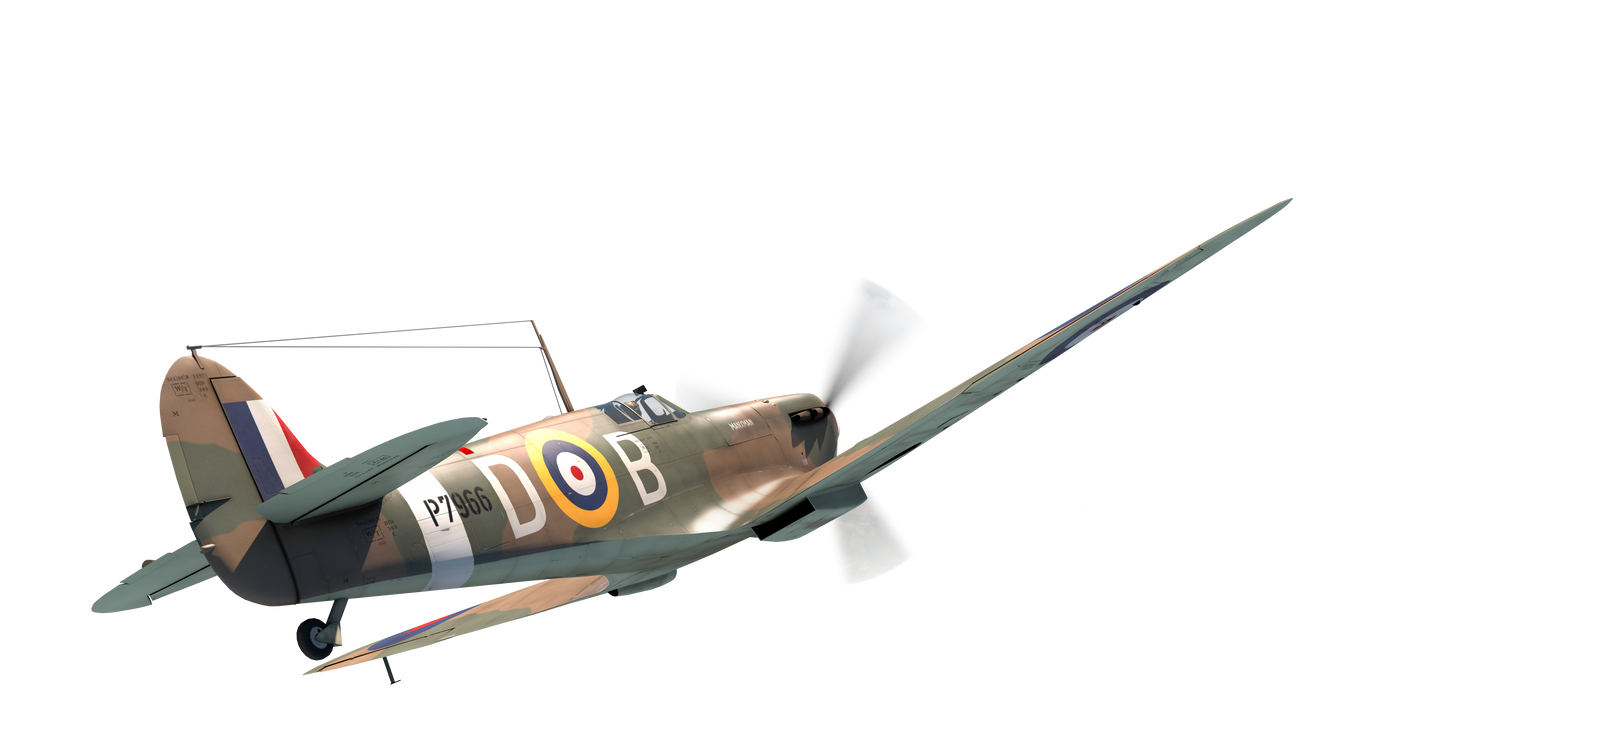 spitfire plane with Spitfire   518087963 on Spitfire mk1 016 further File Spitfire MKI Wiki furthermore Two Seater Spitfire Flights in addition Mshwapb3 further Chance Vought F4u 4 Corsair.